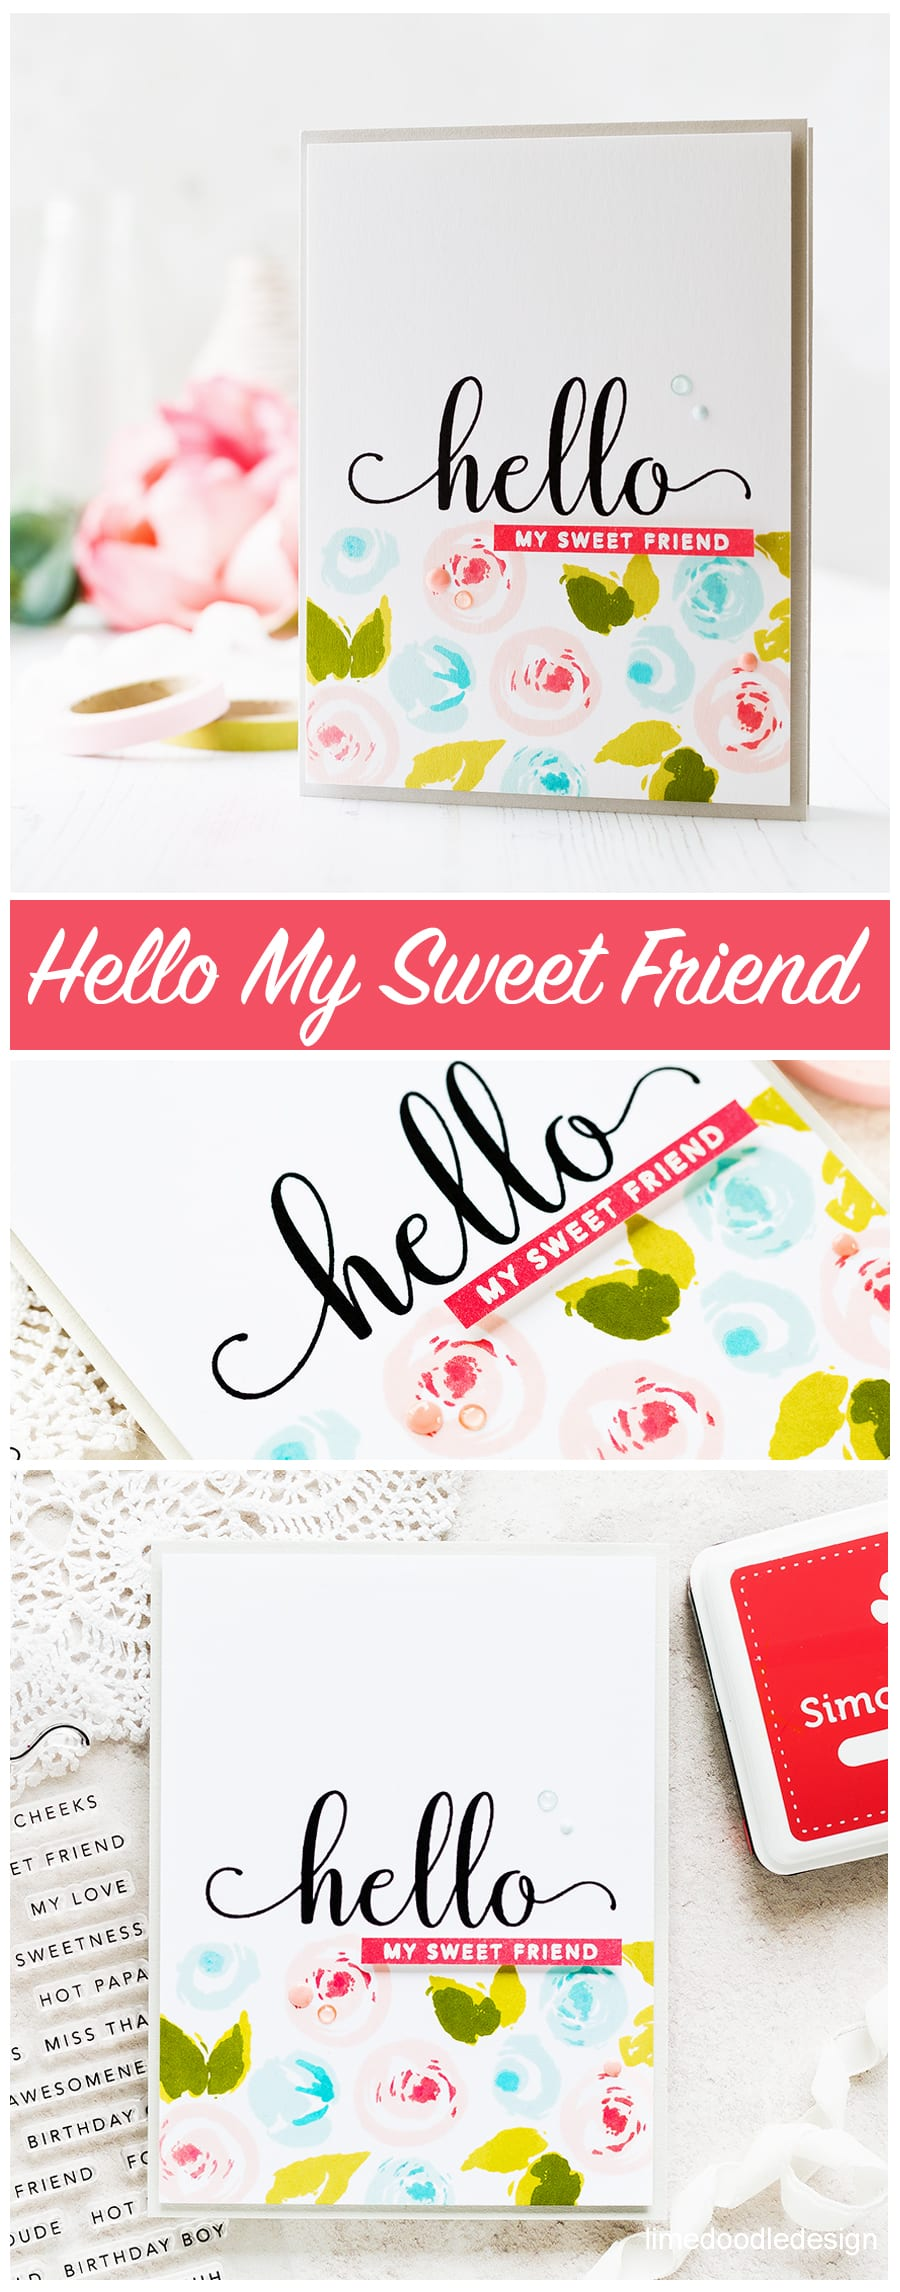 Hello My Sweet Friend handmade card by Debby Hughes. Find out more about this handmade card here: https://limedoodledesign.com/2017/08/a-one-layer-card-almost/